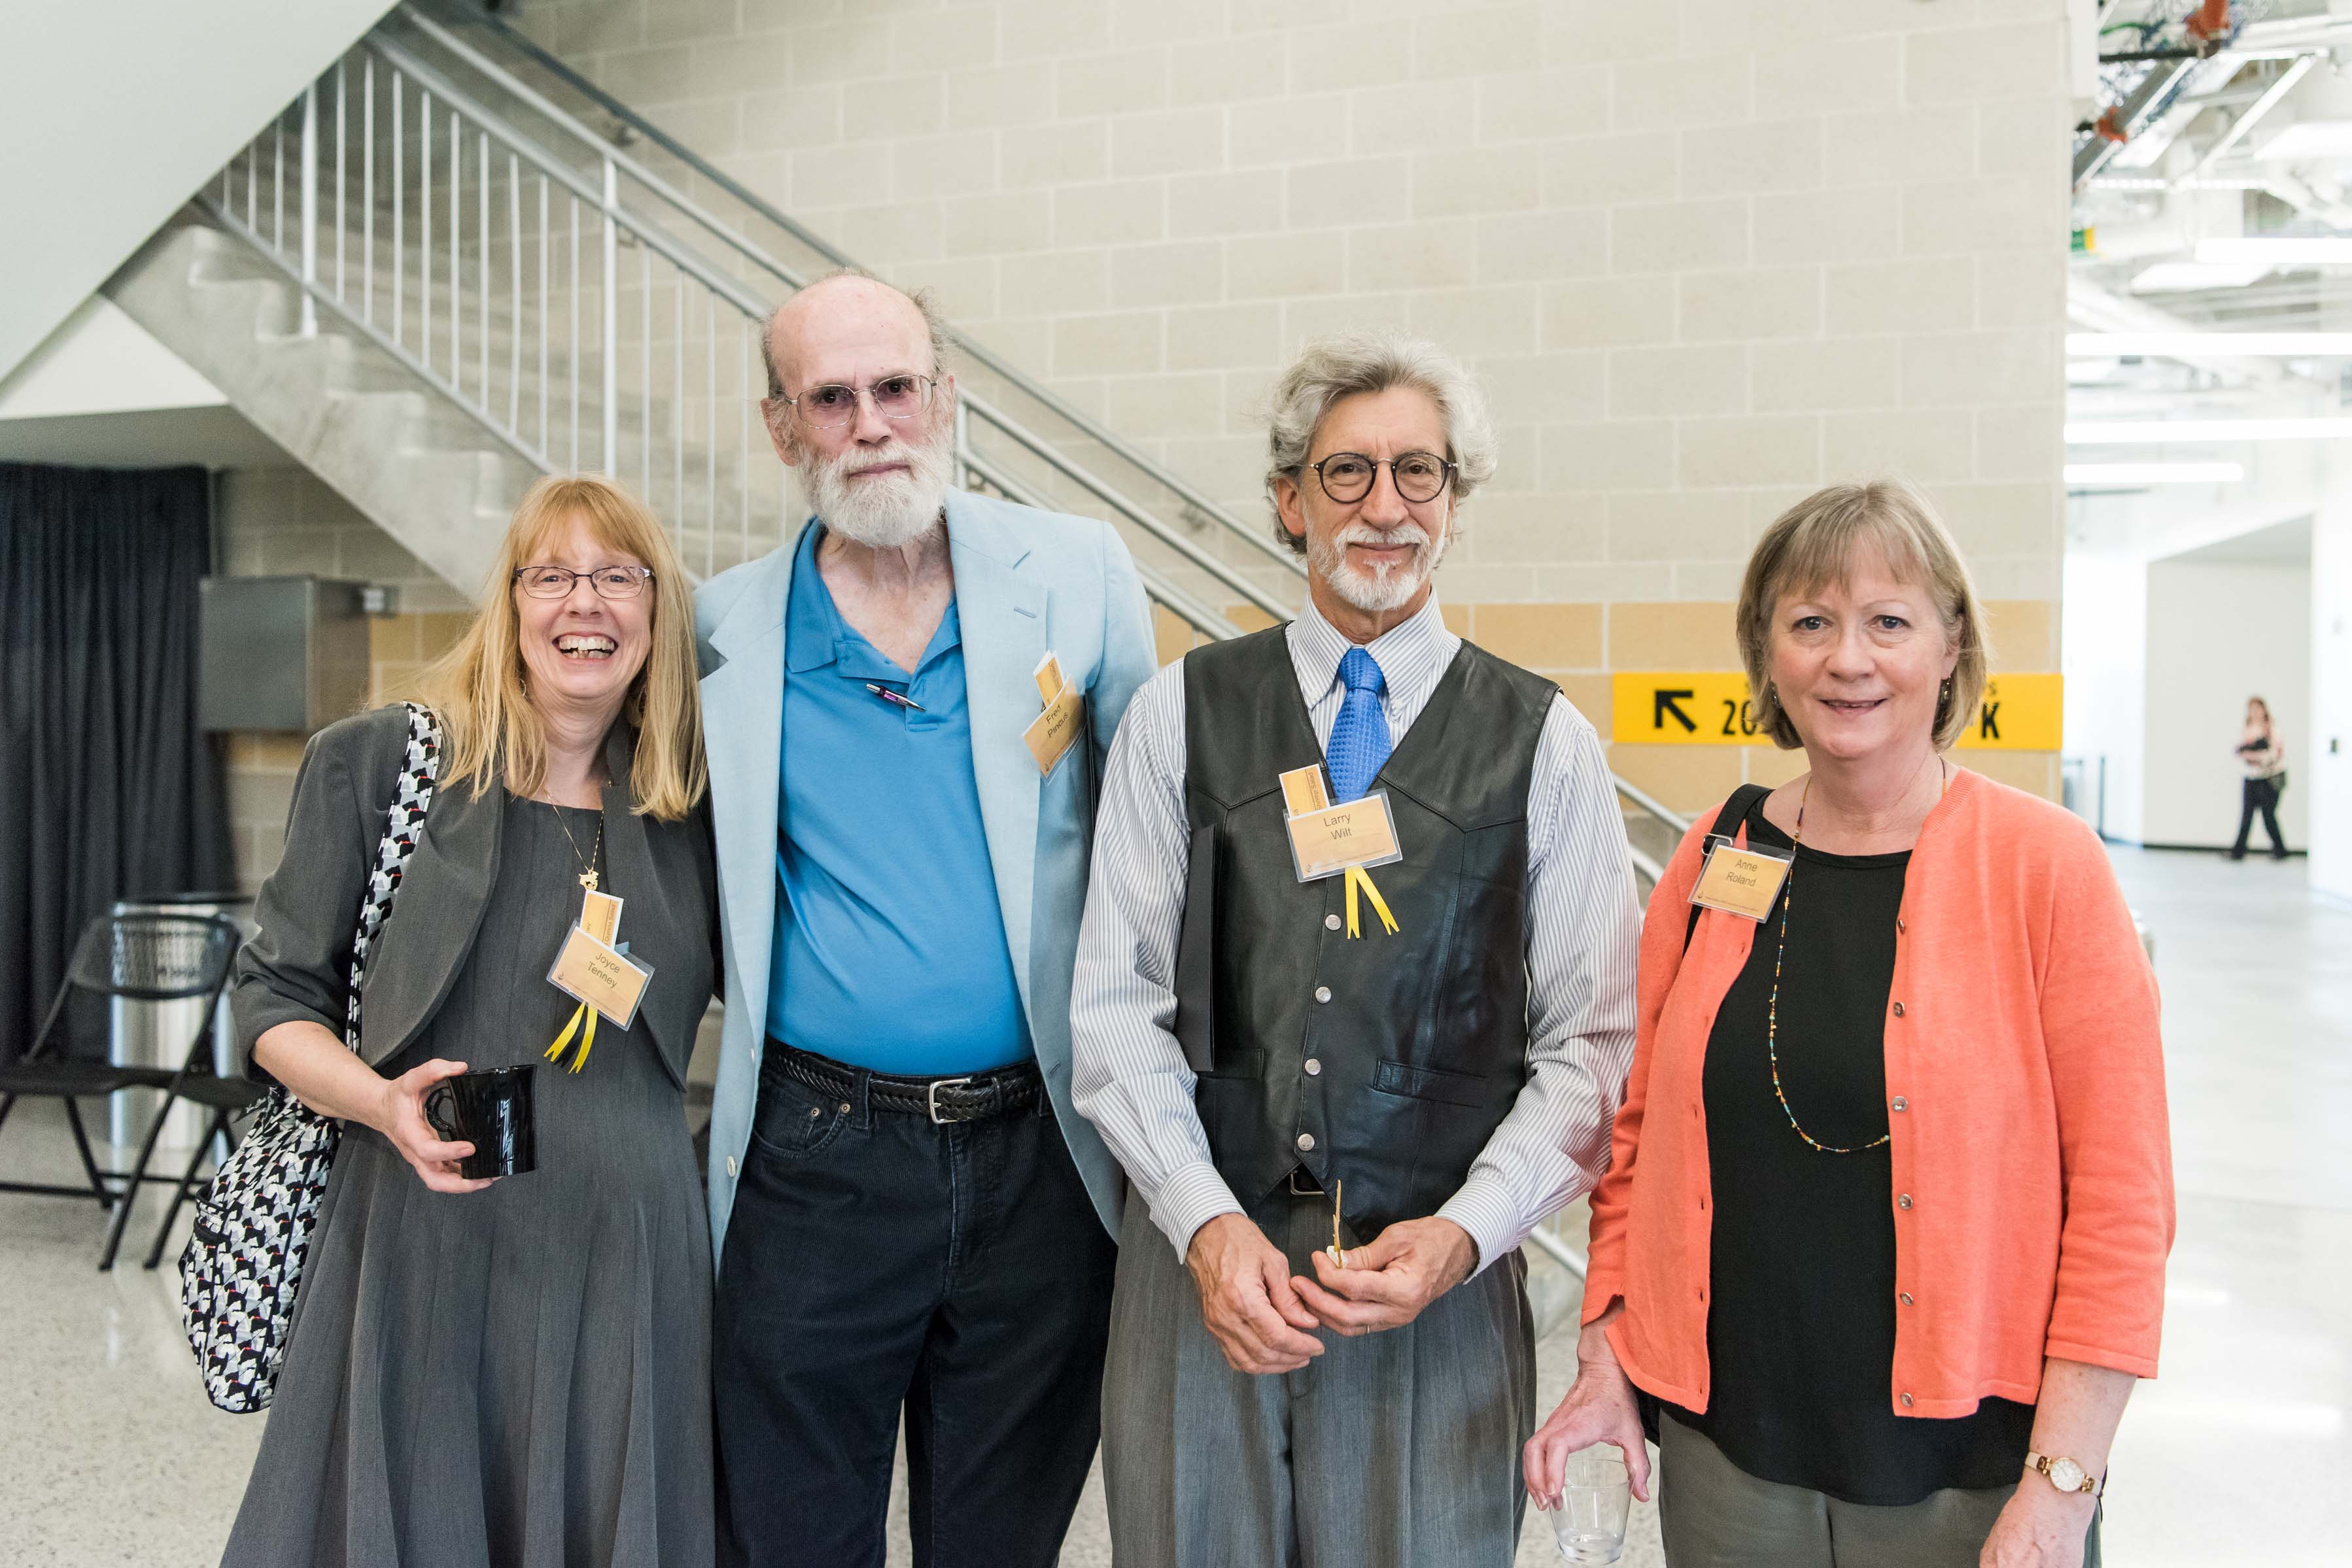 Group of four pose together in Event center at Wisdom Institute lunch